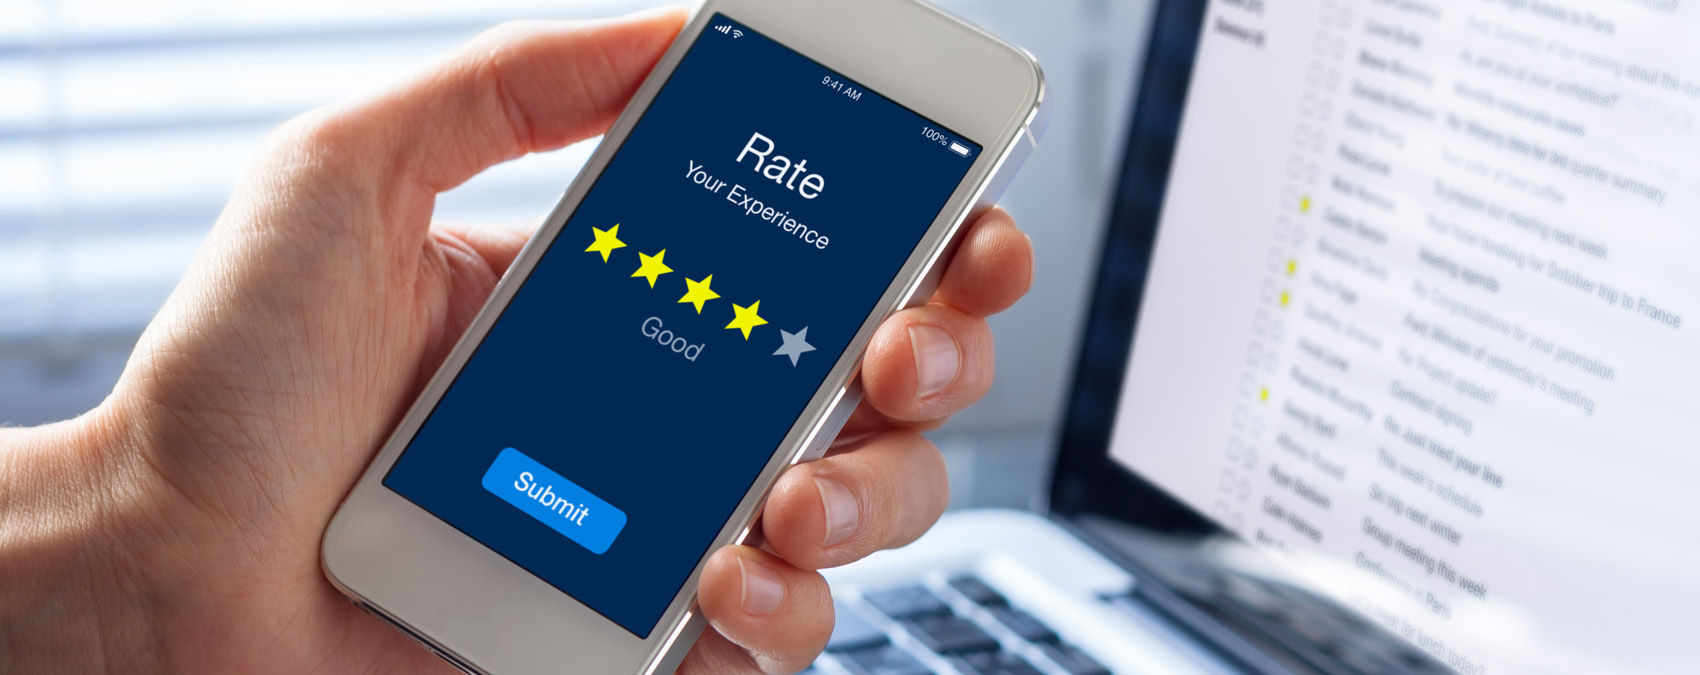 Review Management Services for Local Businesses